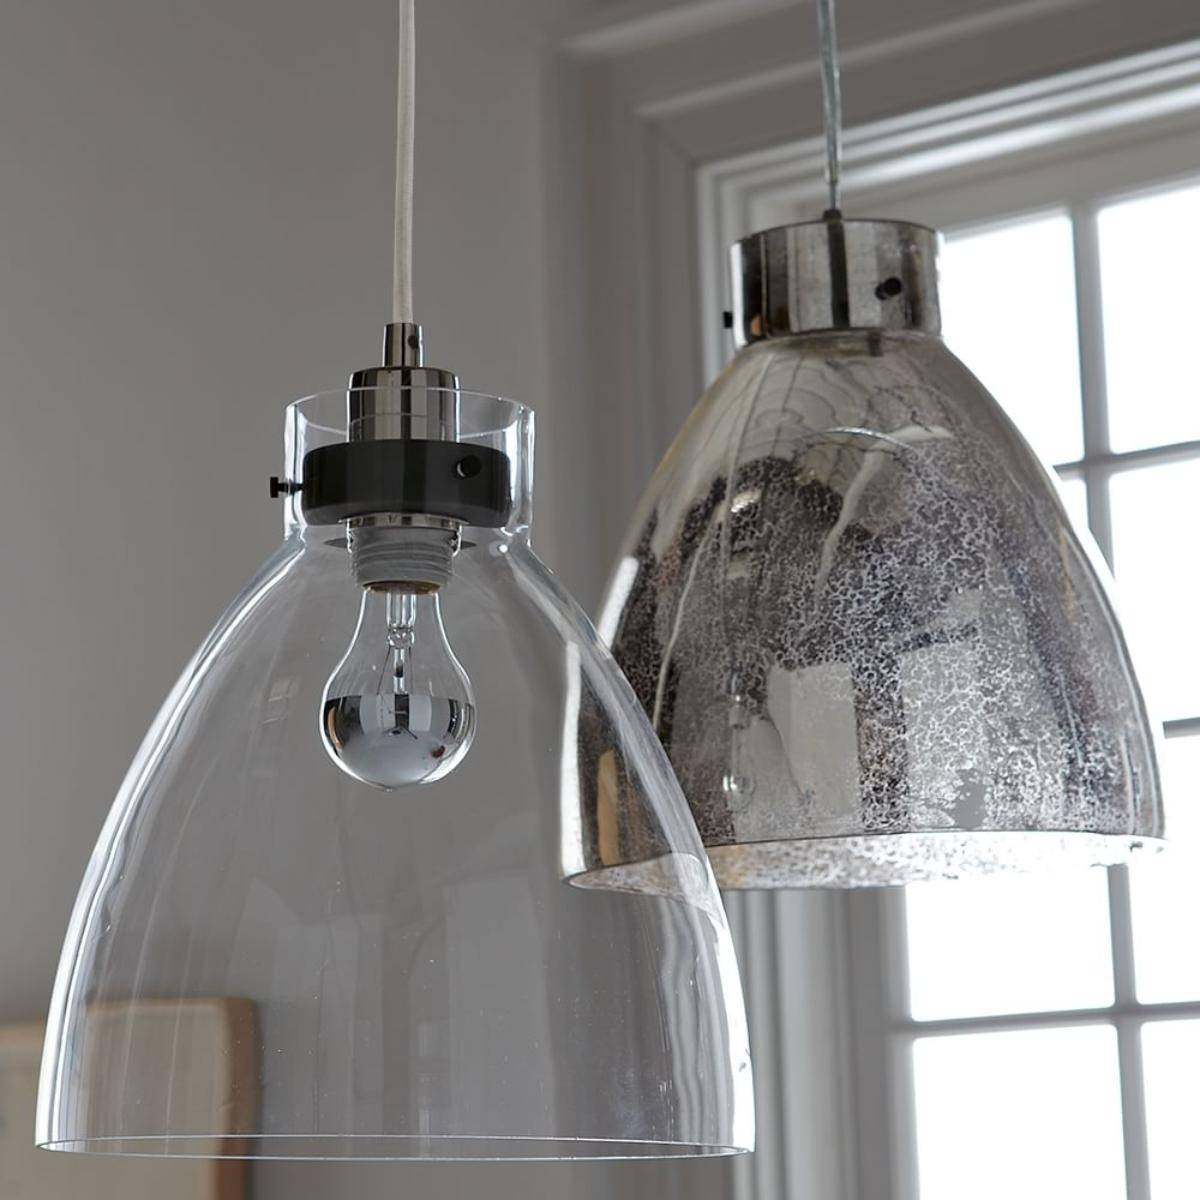 Industrial Pendant Lighting Cage : Some Style Industrial Pendant within West Elm Bathroom Pendant Lights (Image 12 of 15)